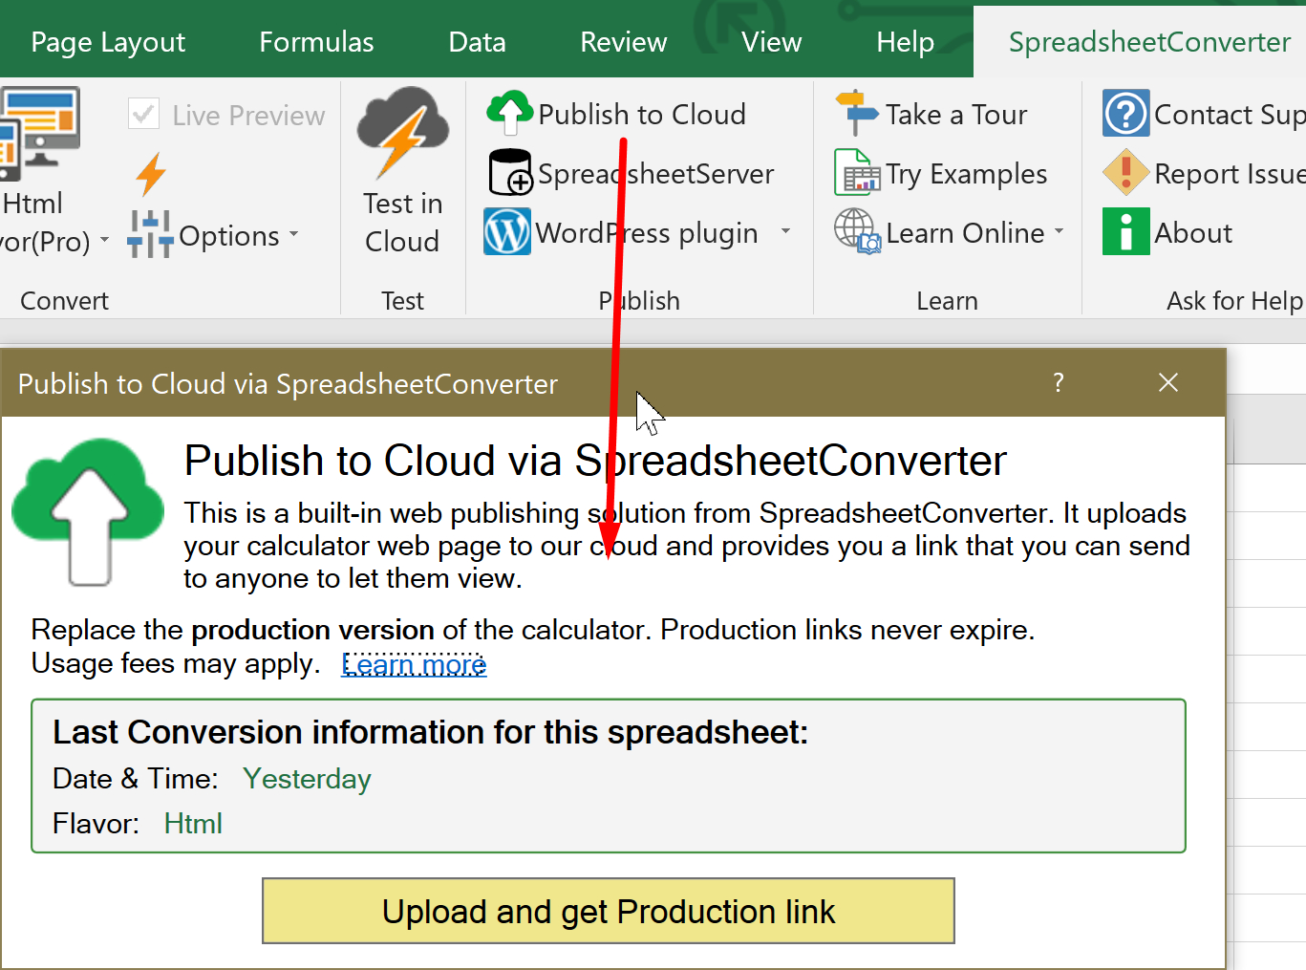 How To Link An Excel Spreadsheet To A Web Page With Import Excel Spreadsheets And Charts In Wix With Publish To Cloud